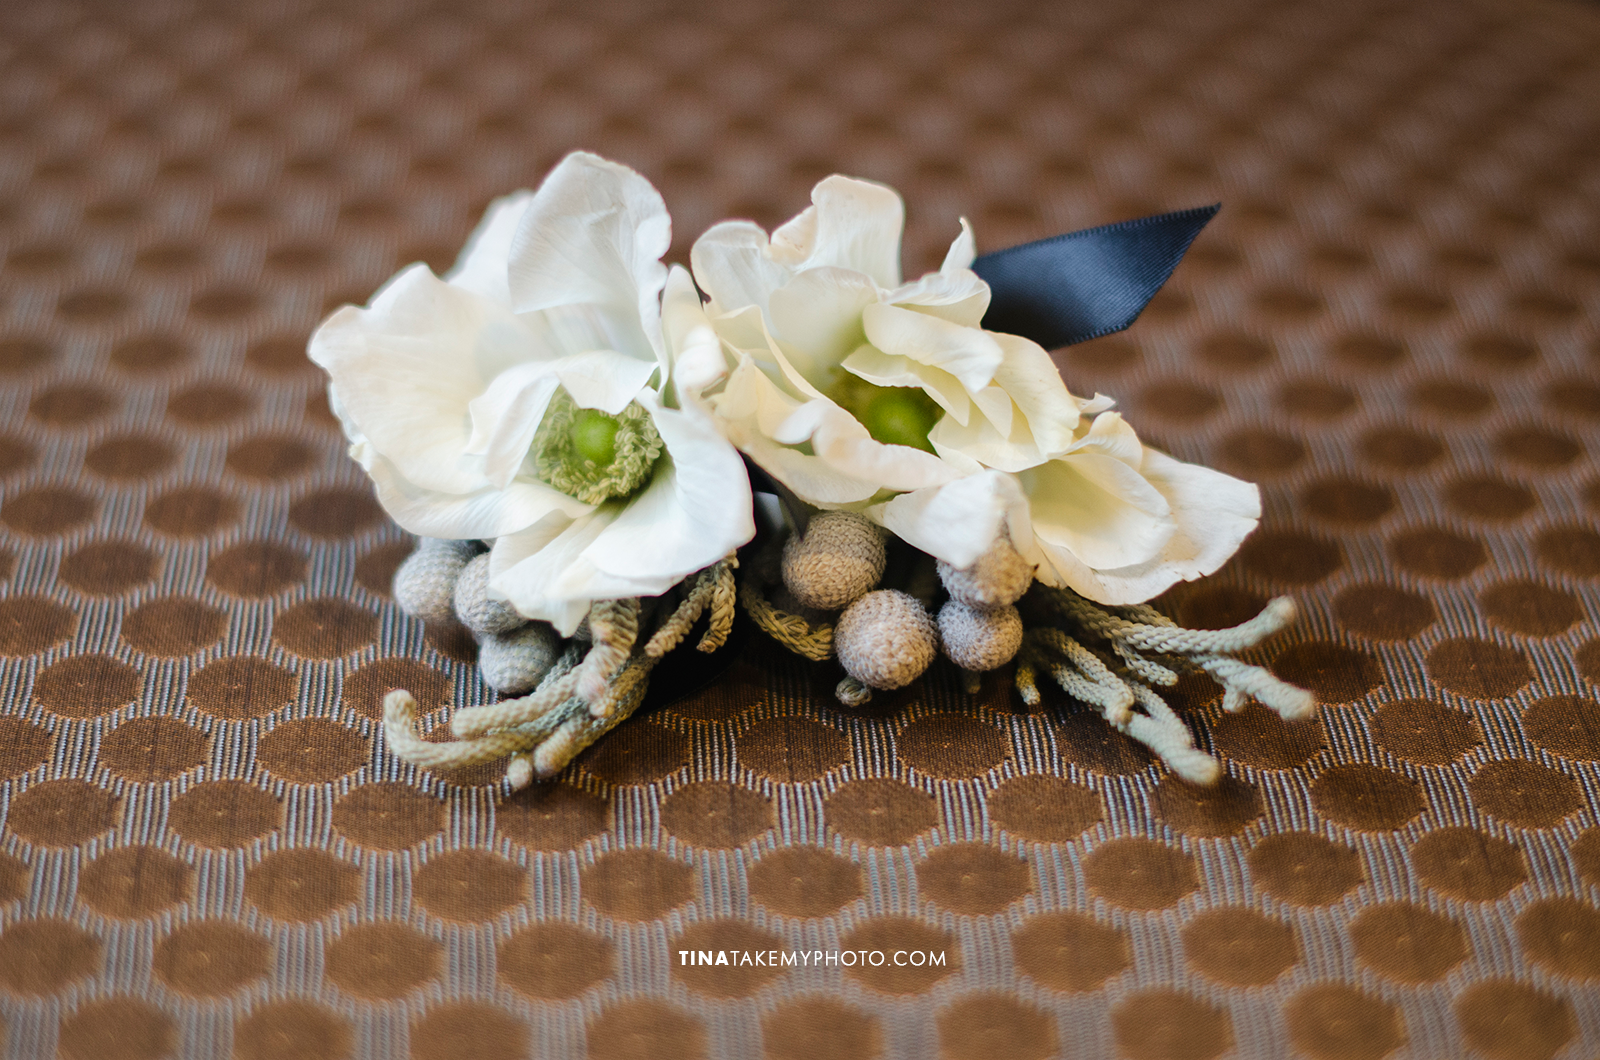 18-Washington-DC-Virginia-Gay-Same-Sex-Wedding-Men-12-13-14-boutonniere-Photographer-Flowers-White